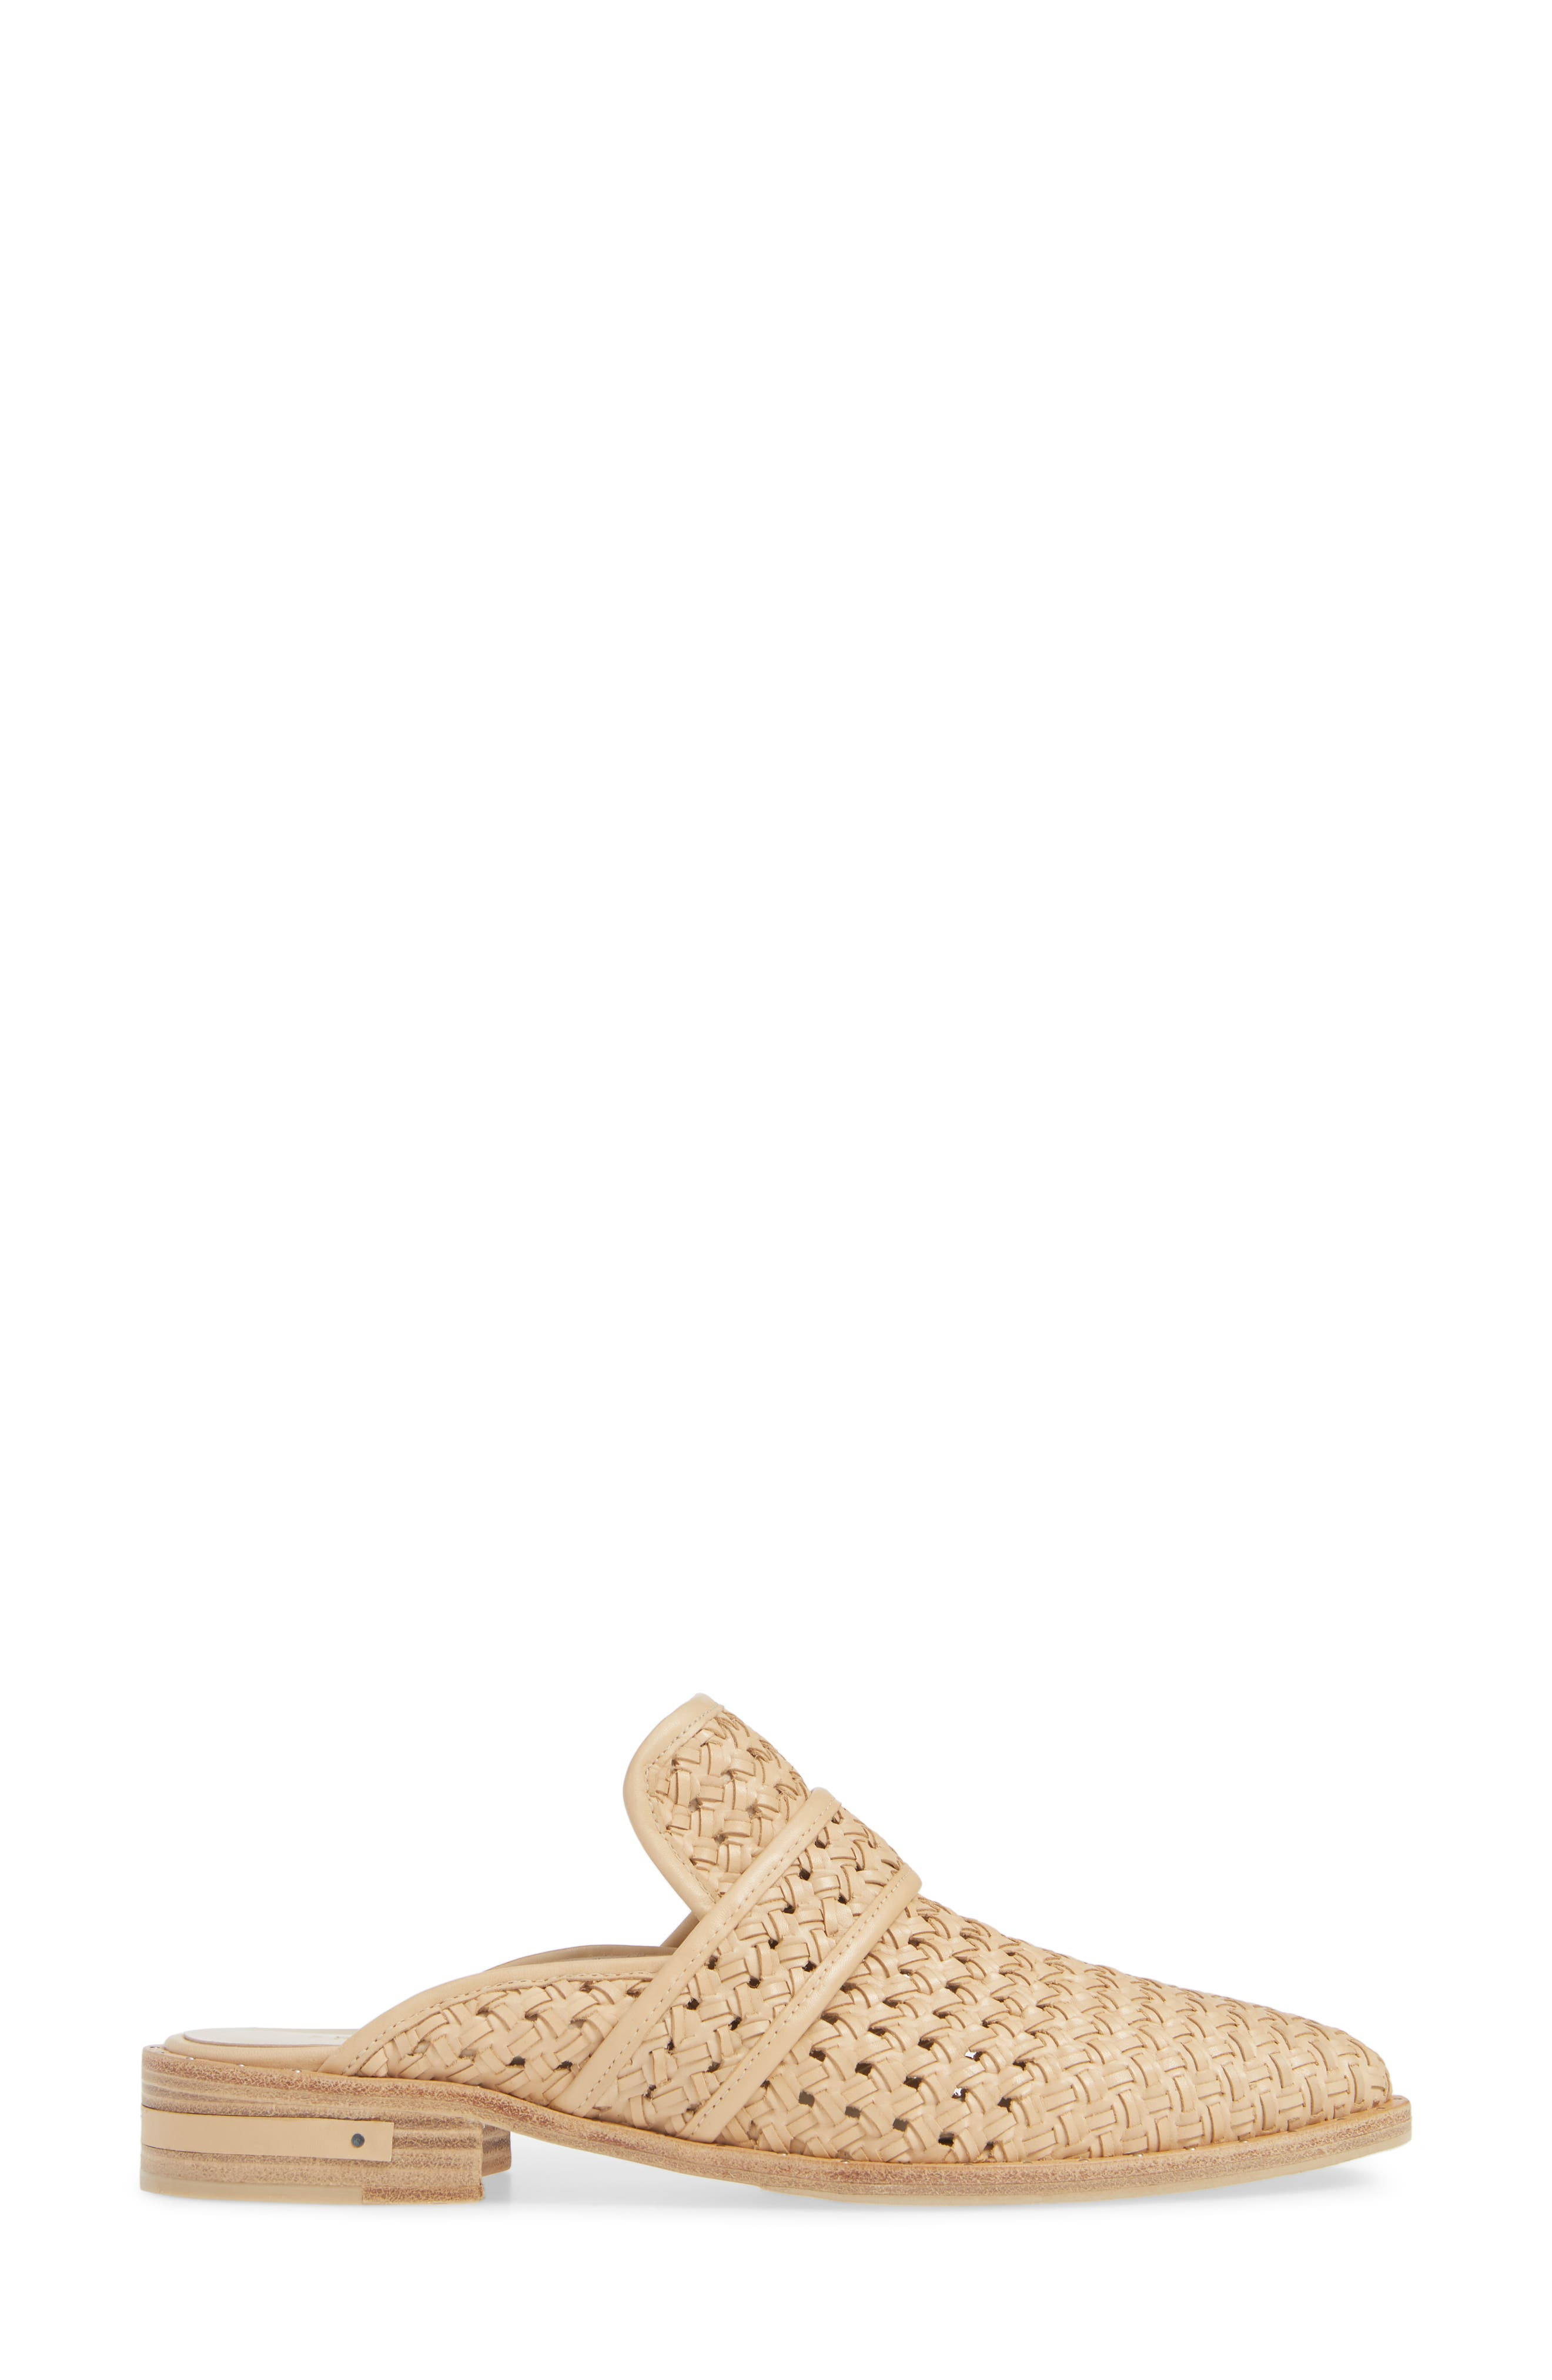 Keen Loafer Mule,                             Alternate thumbnail 3, color,                             NUDE WOVEN